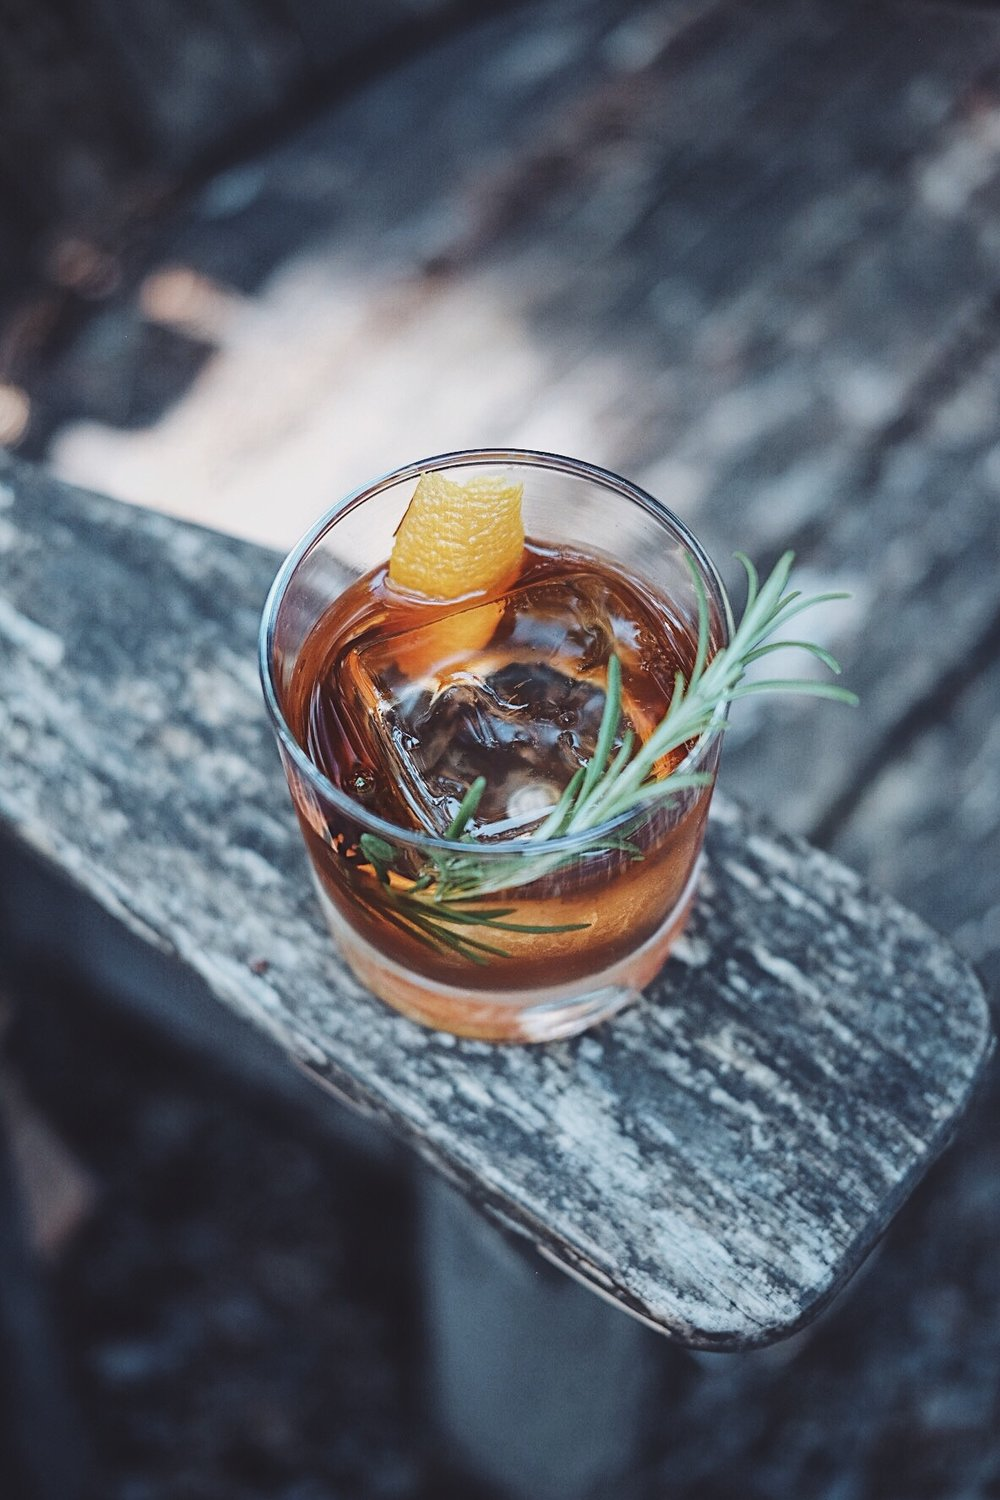 ingredients: - 1 1/2 oz aged rum1/2 oz Alpine liqueur1 tsp Demerara syrup1 dash aromatic bitters2 dash chocolate bittersGarnish: Orange peel & rosemary